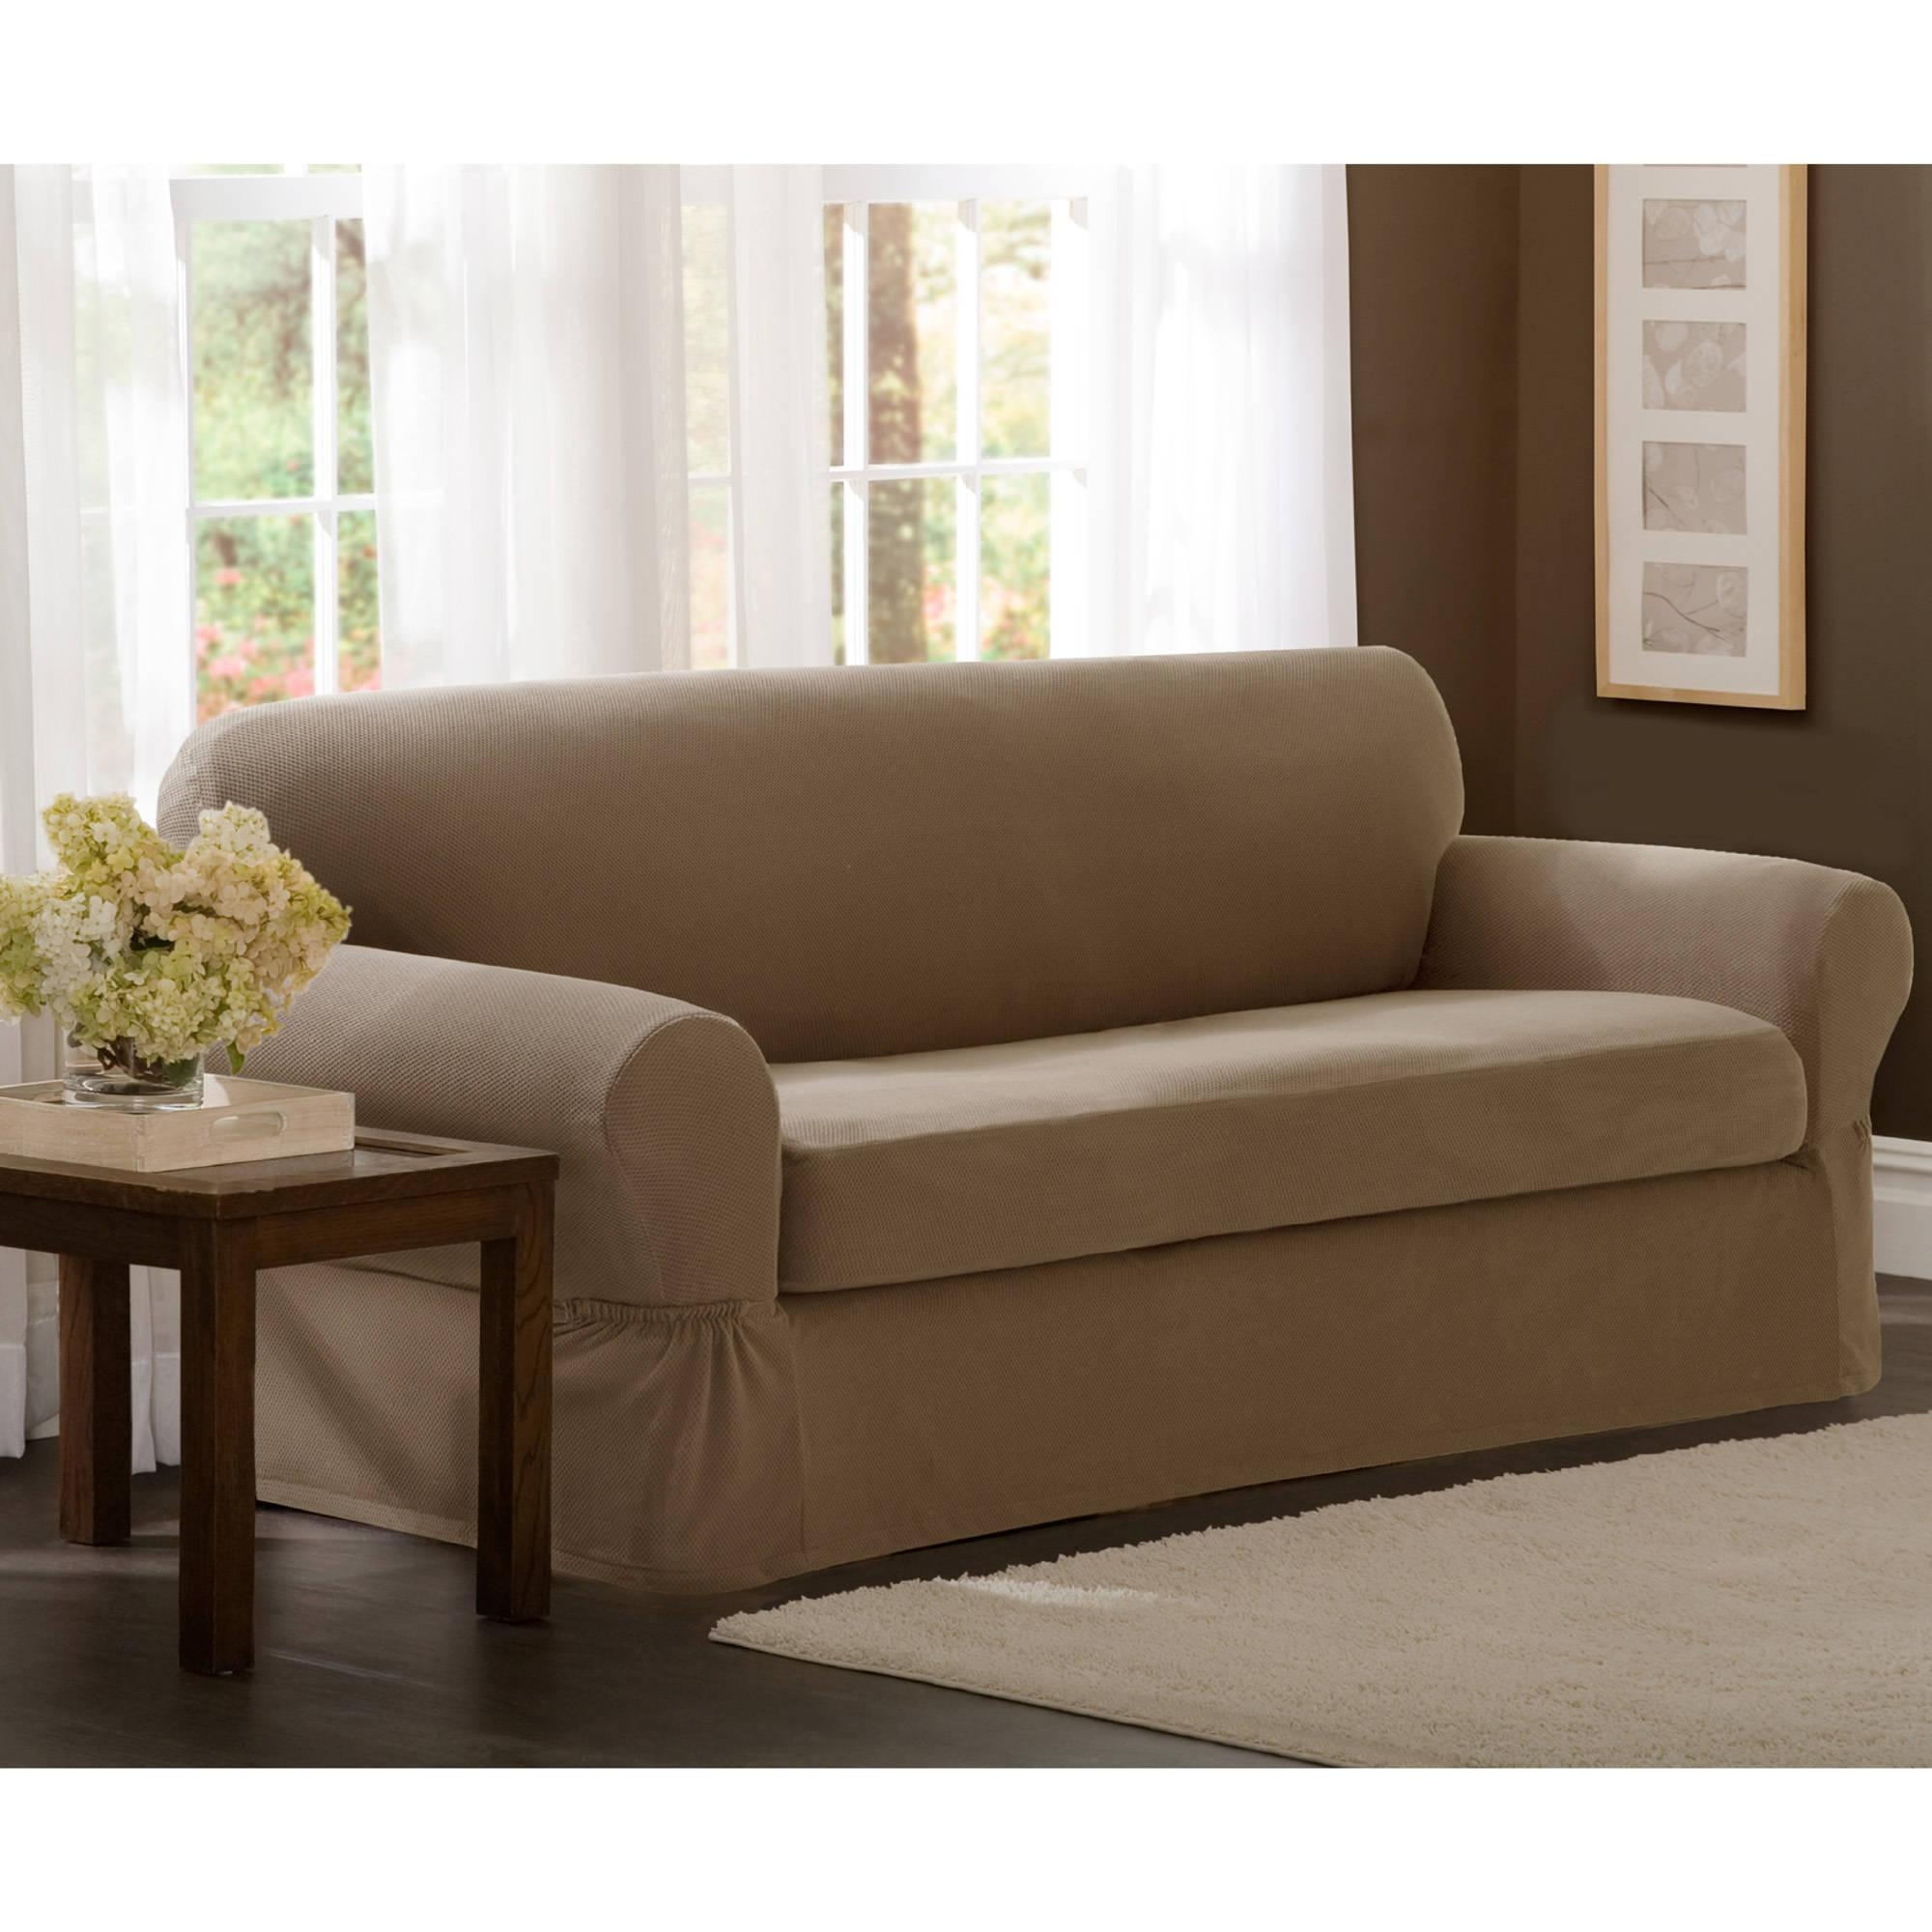 Maytex Stretch 2 Piece Sofa Slipcover – Walmart With Canvas Sofas Covers (View 15 of 20)